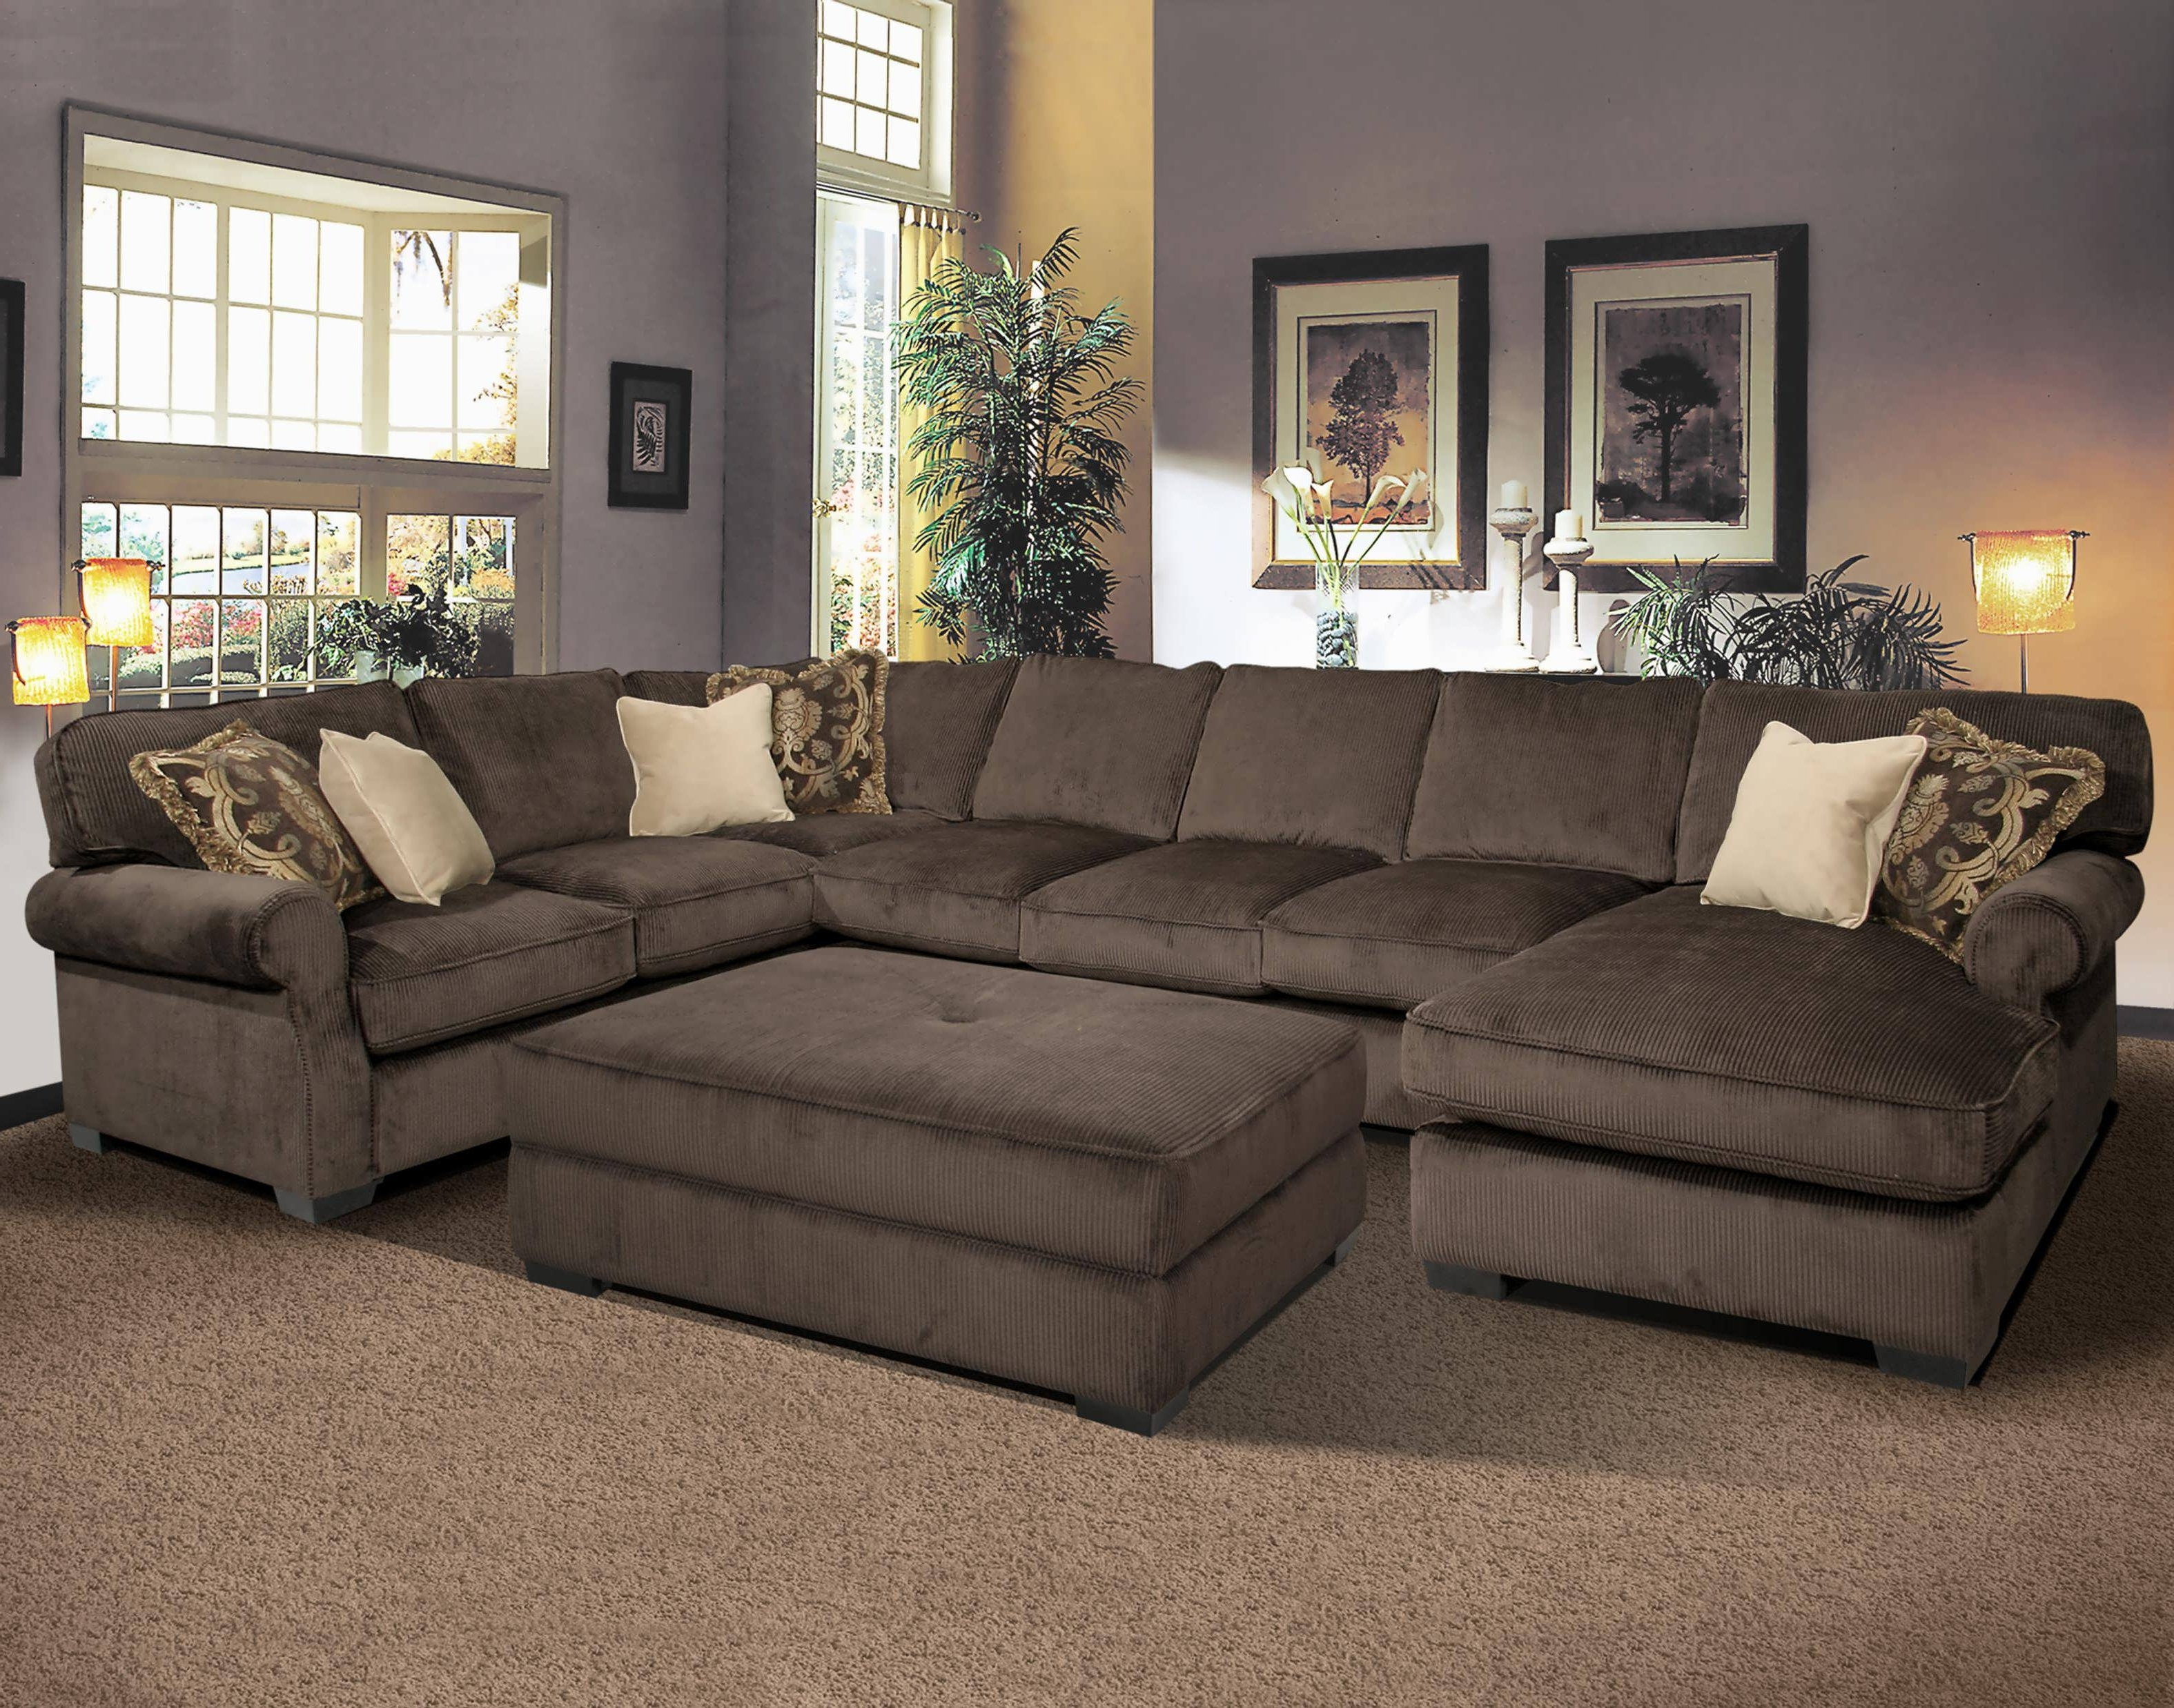 Well Known Deep Seat Sectionals With Chaise In Sofa : Velvet Sectional Black Sectional Couch Large Sectional (View 15 of 15)